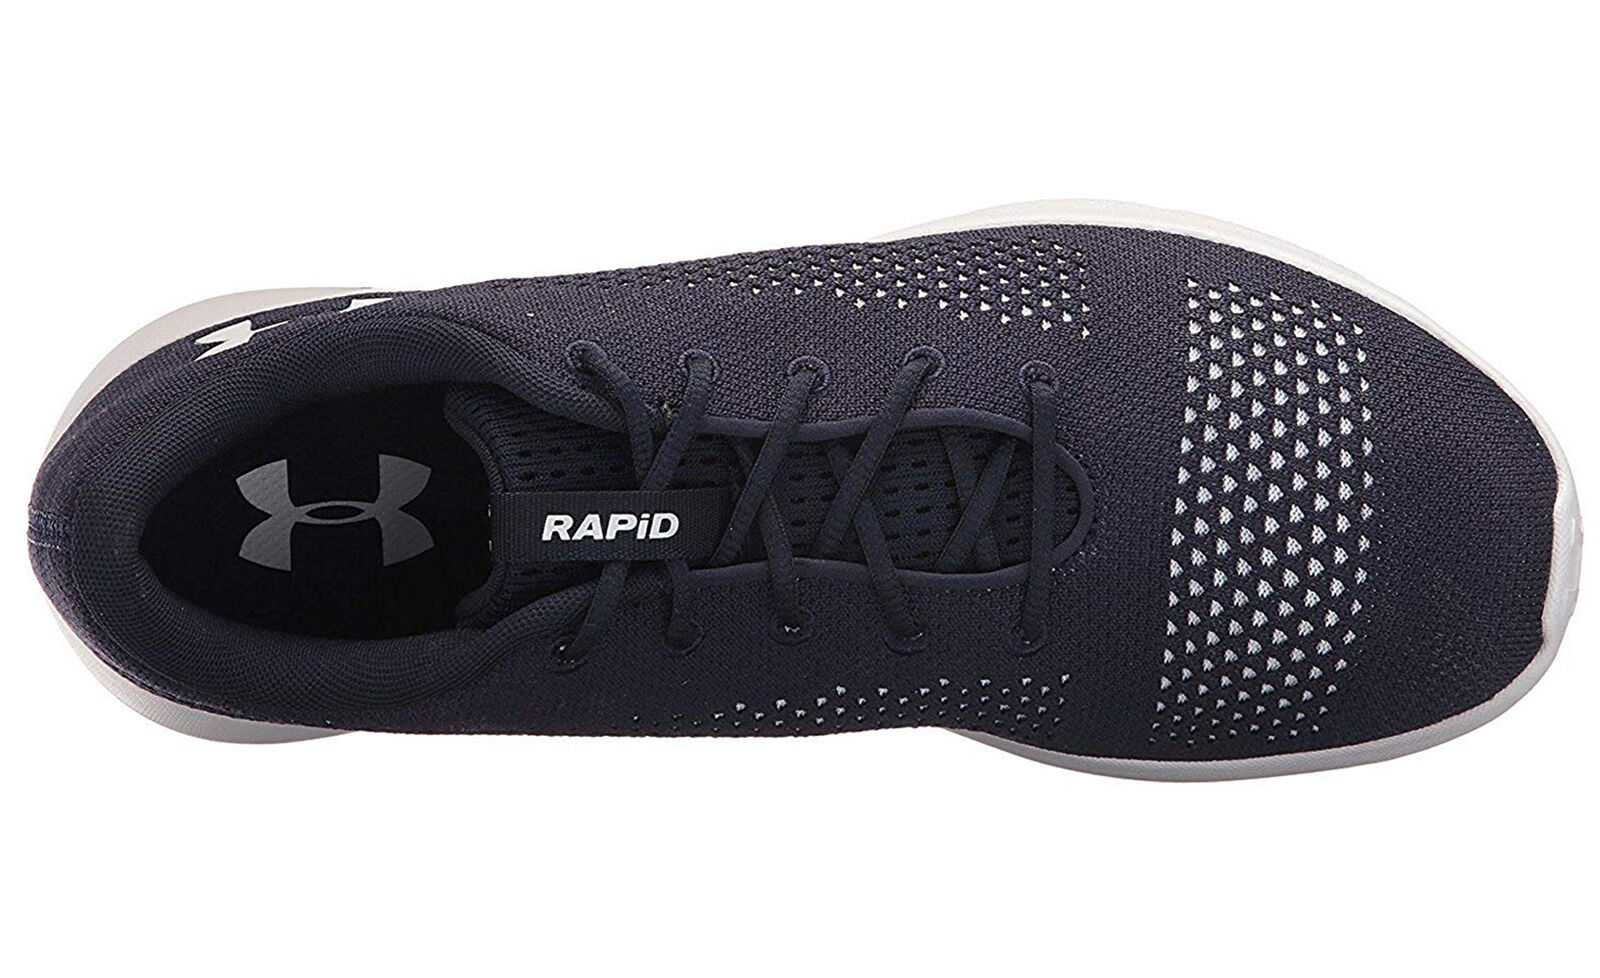 UNDER ARMOUR RAPID RUNNING NAVY blanc blanc 1297445-410 hommes SIZES US SIZES hommes 657e90